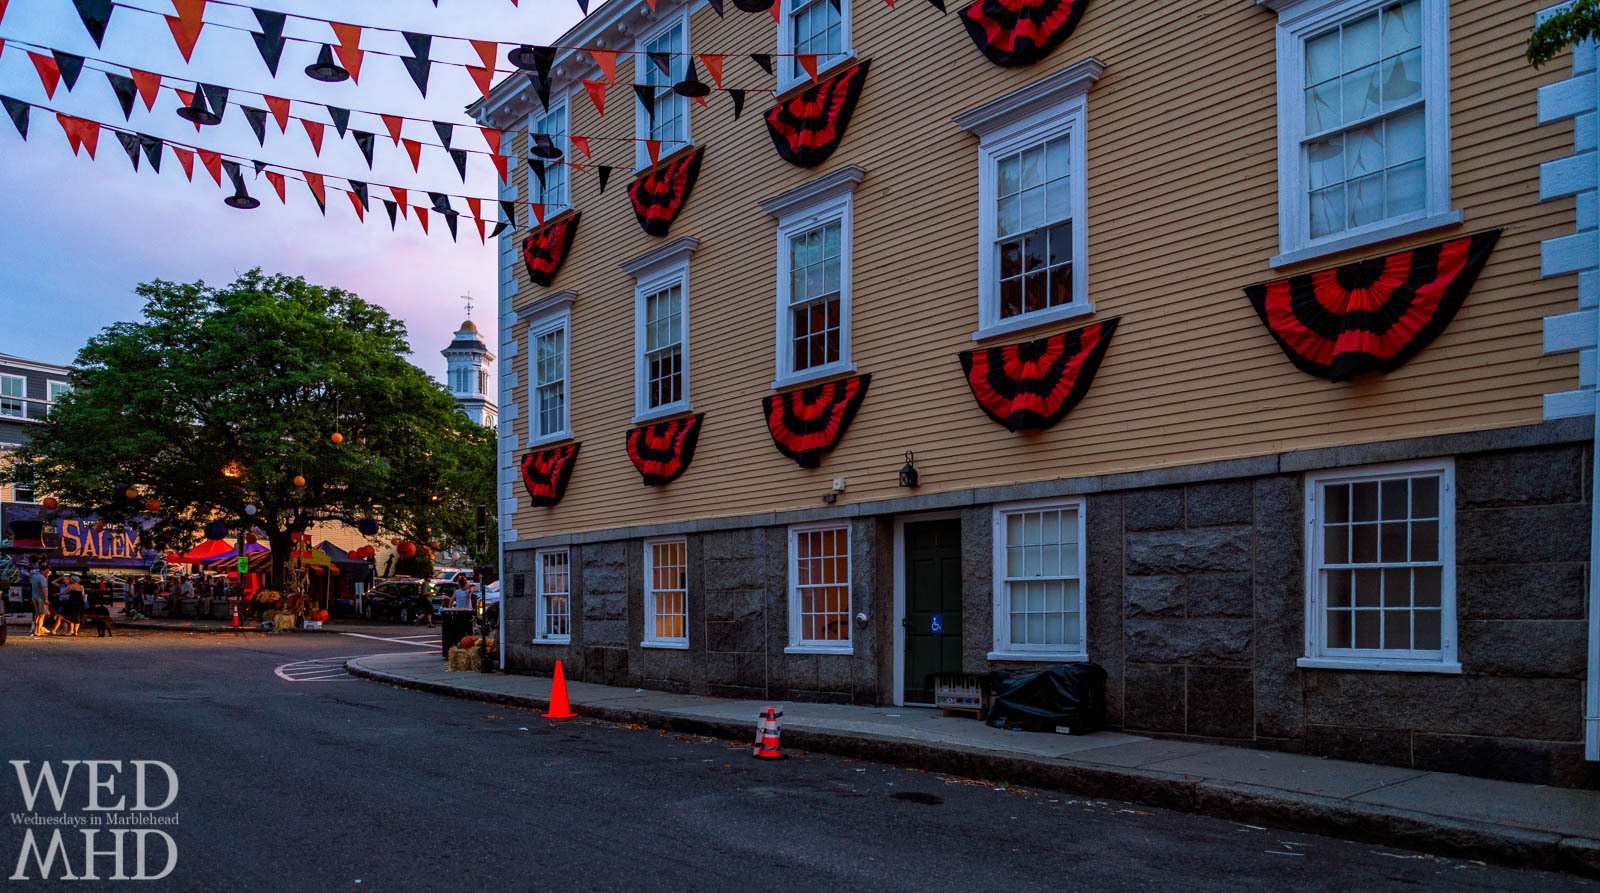 Hollywood comes to Marblehead for the filming of the Adam Sandler Netflix movie 'Hubie Halloween' which turned Old Town House to a Salem locale